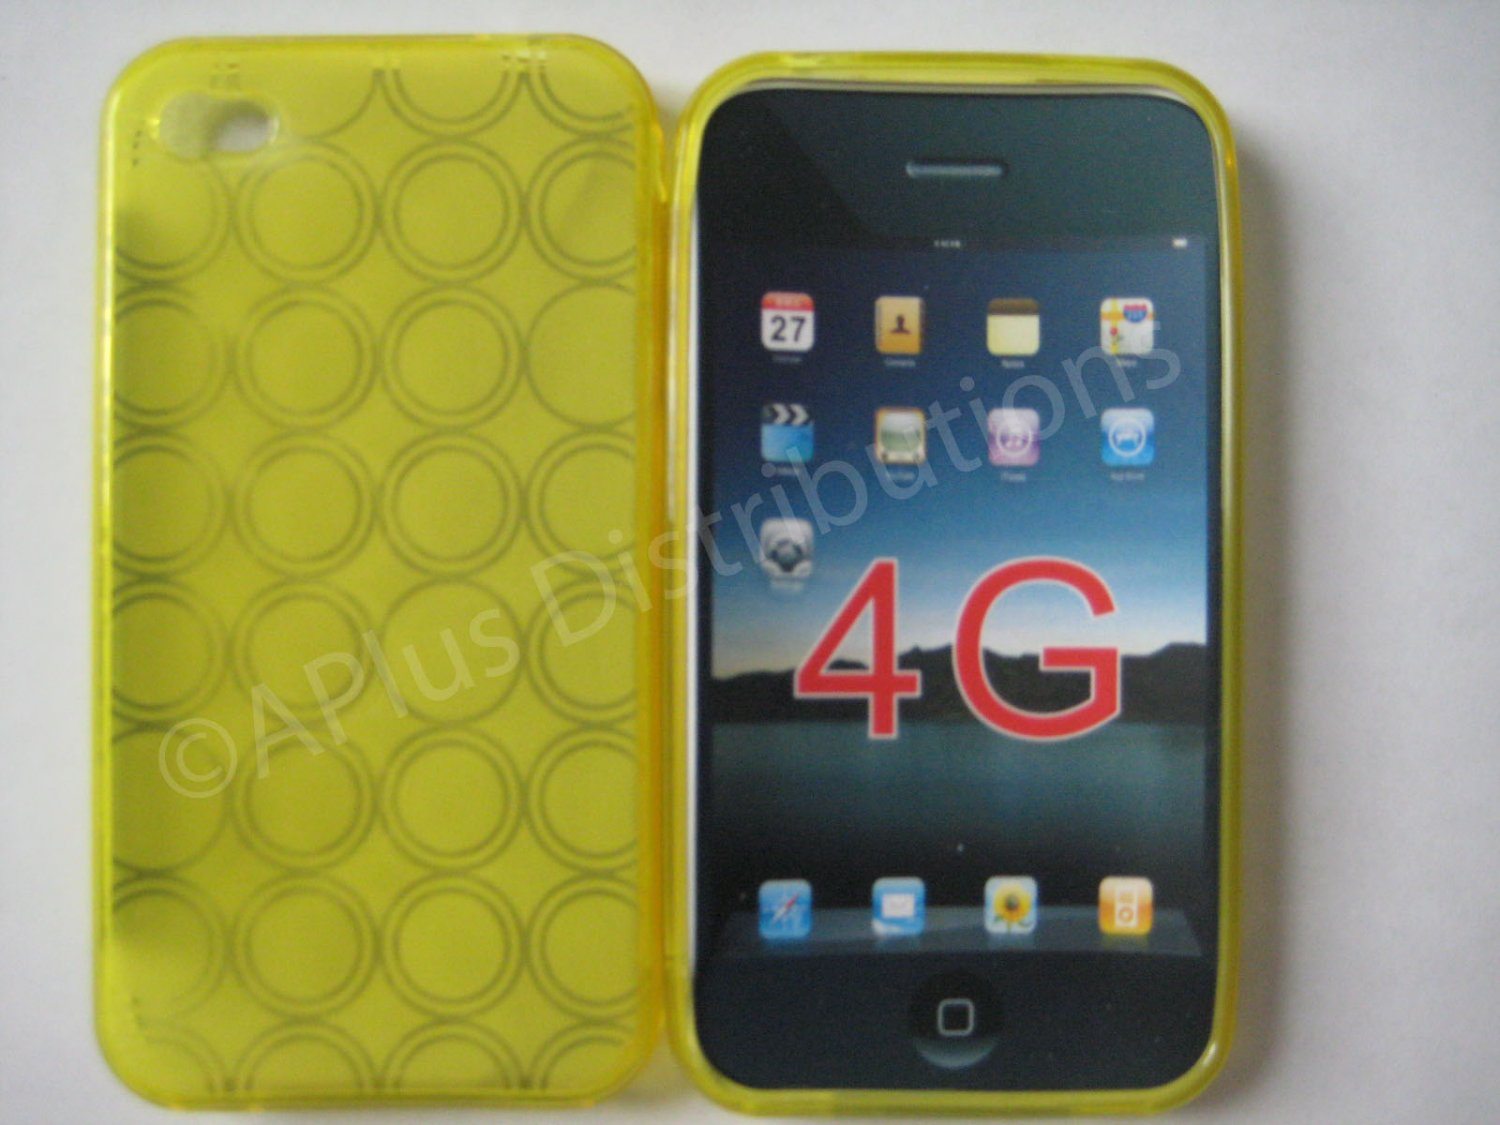 New Yellow Transparent Multi-Circles Design TPU Cover For iPhone 4 - (0041)